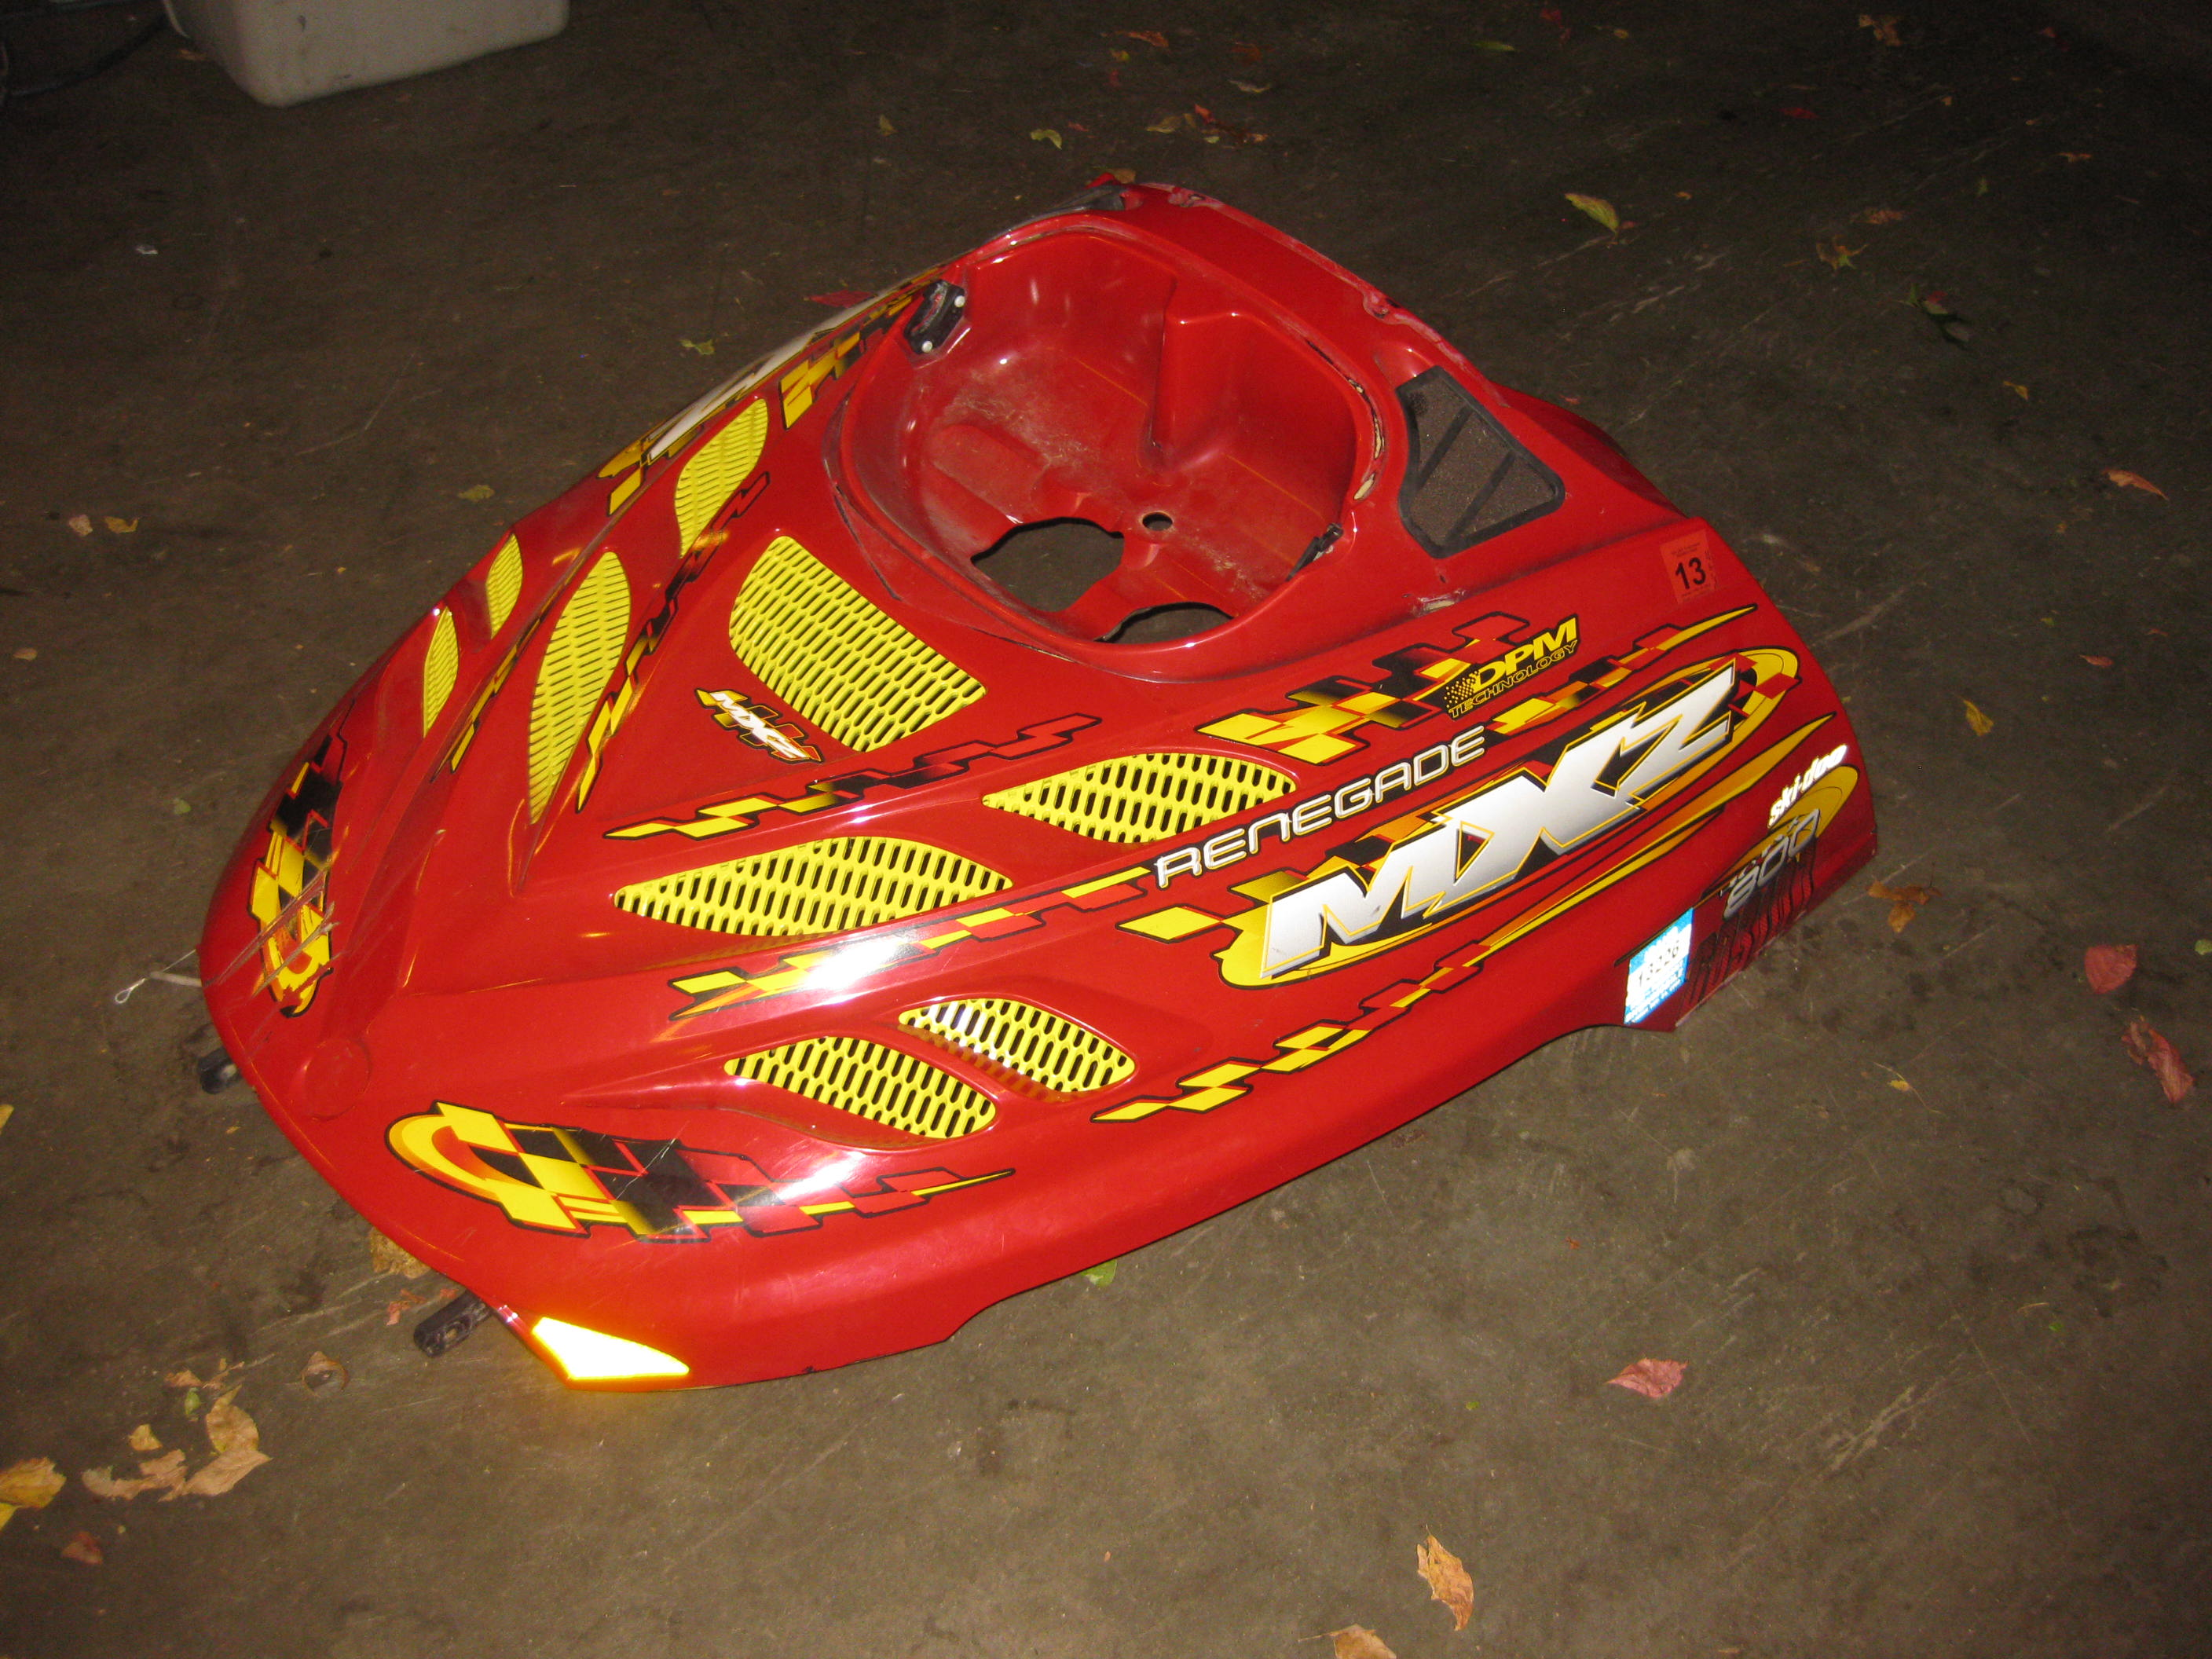 Parts available from 2002 Ski Doo 800 Renegade